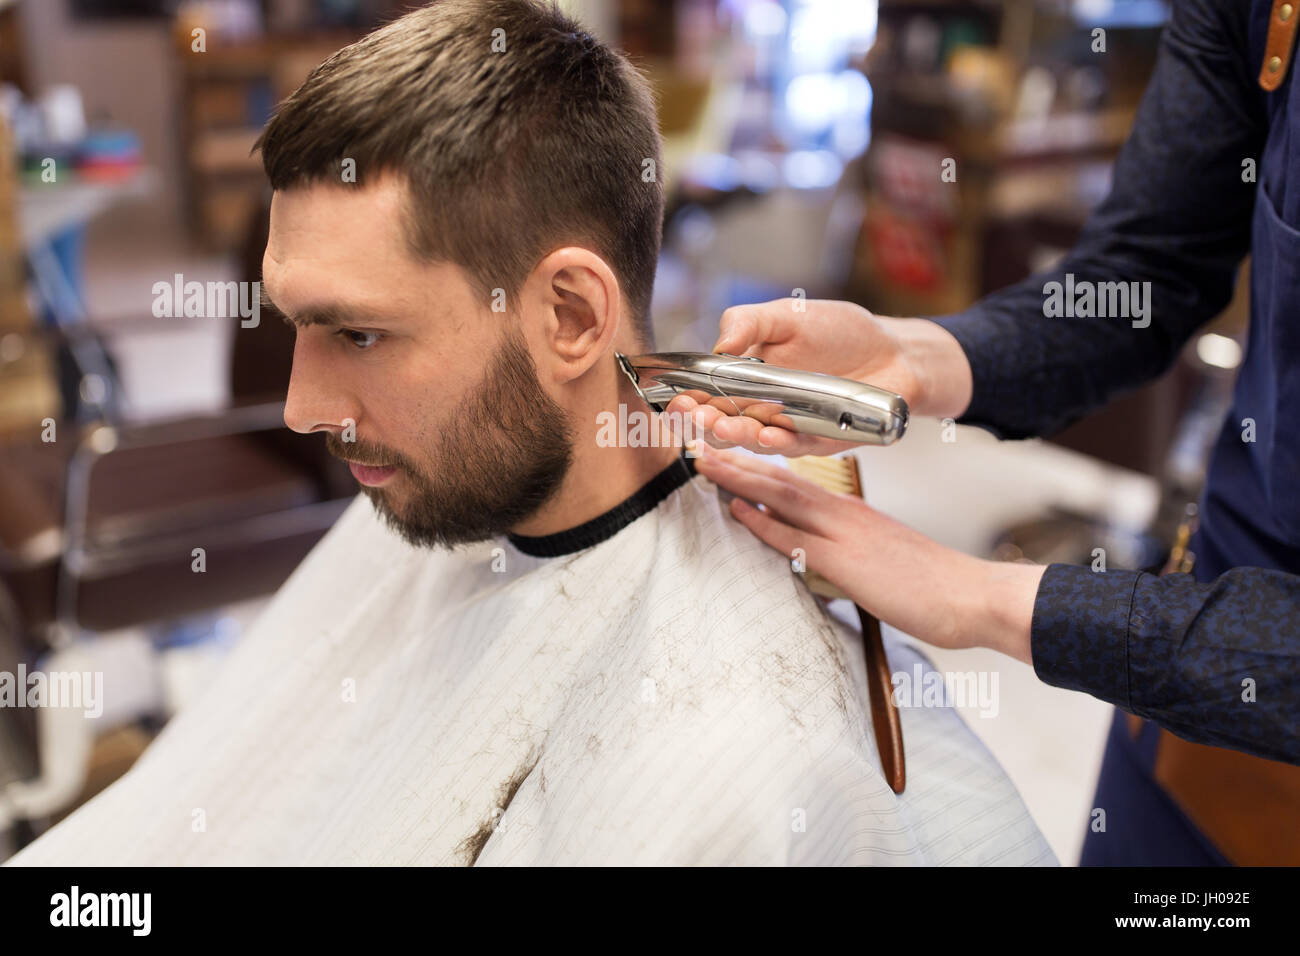 man and barber hands with trimmer cutting hair - Stock Image